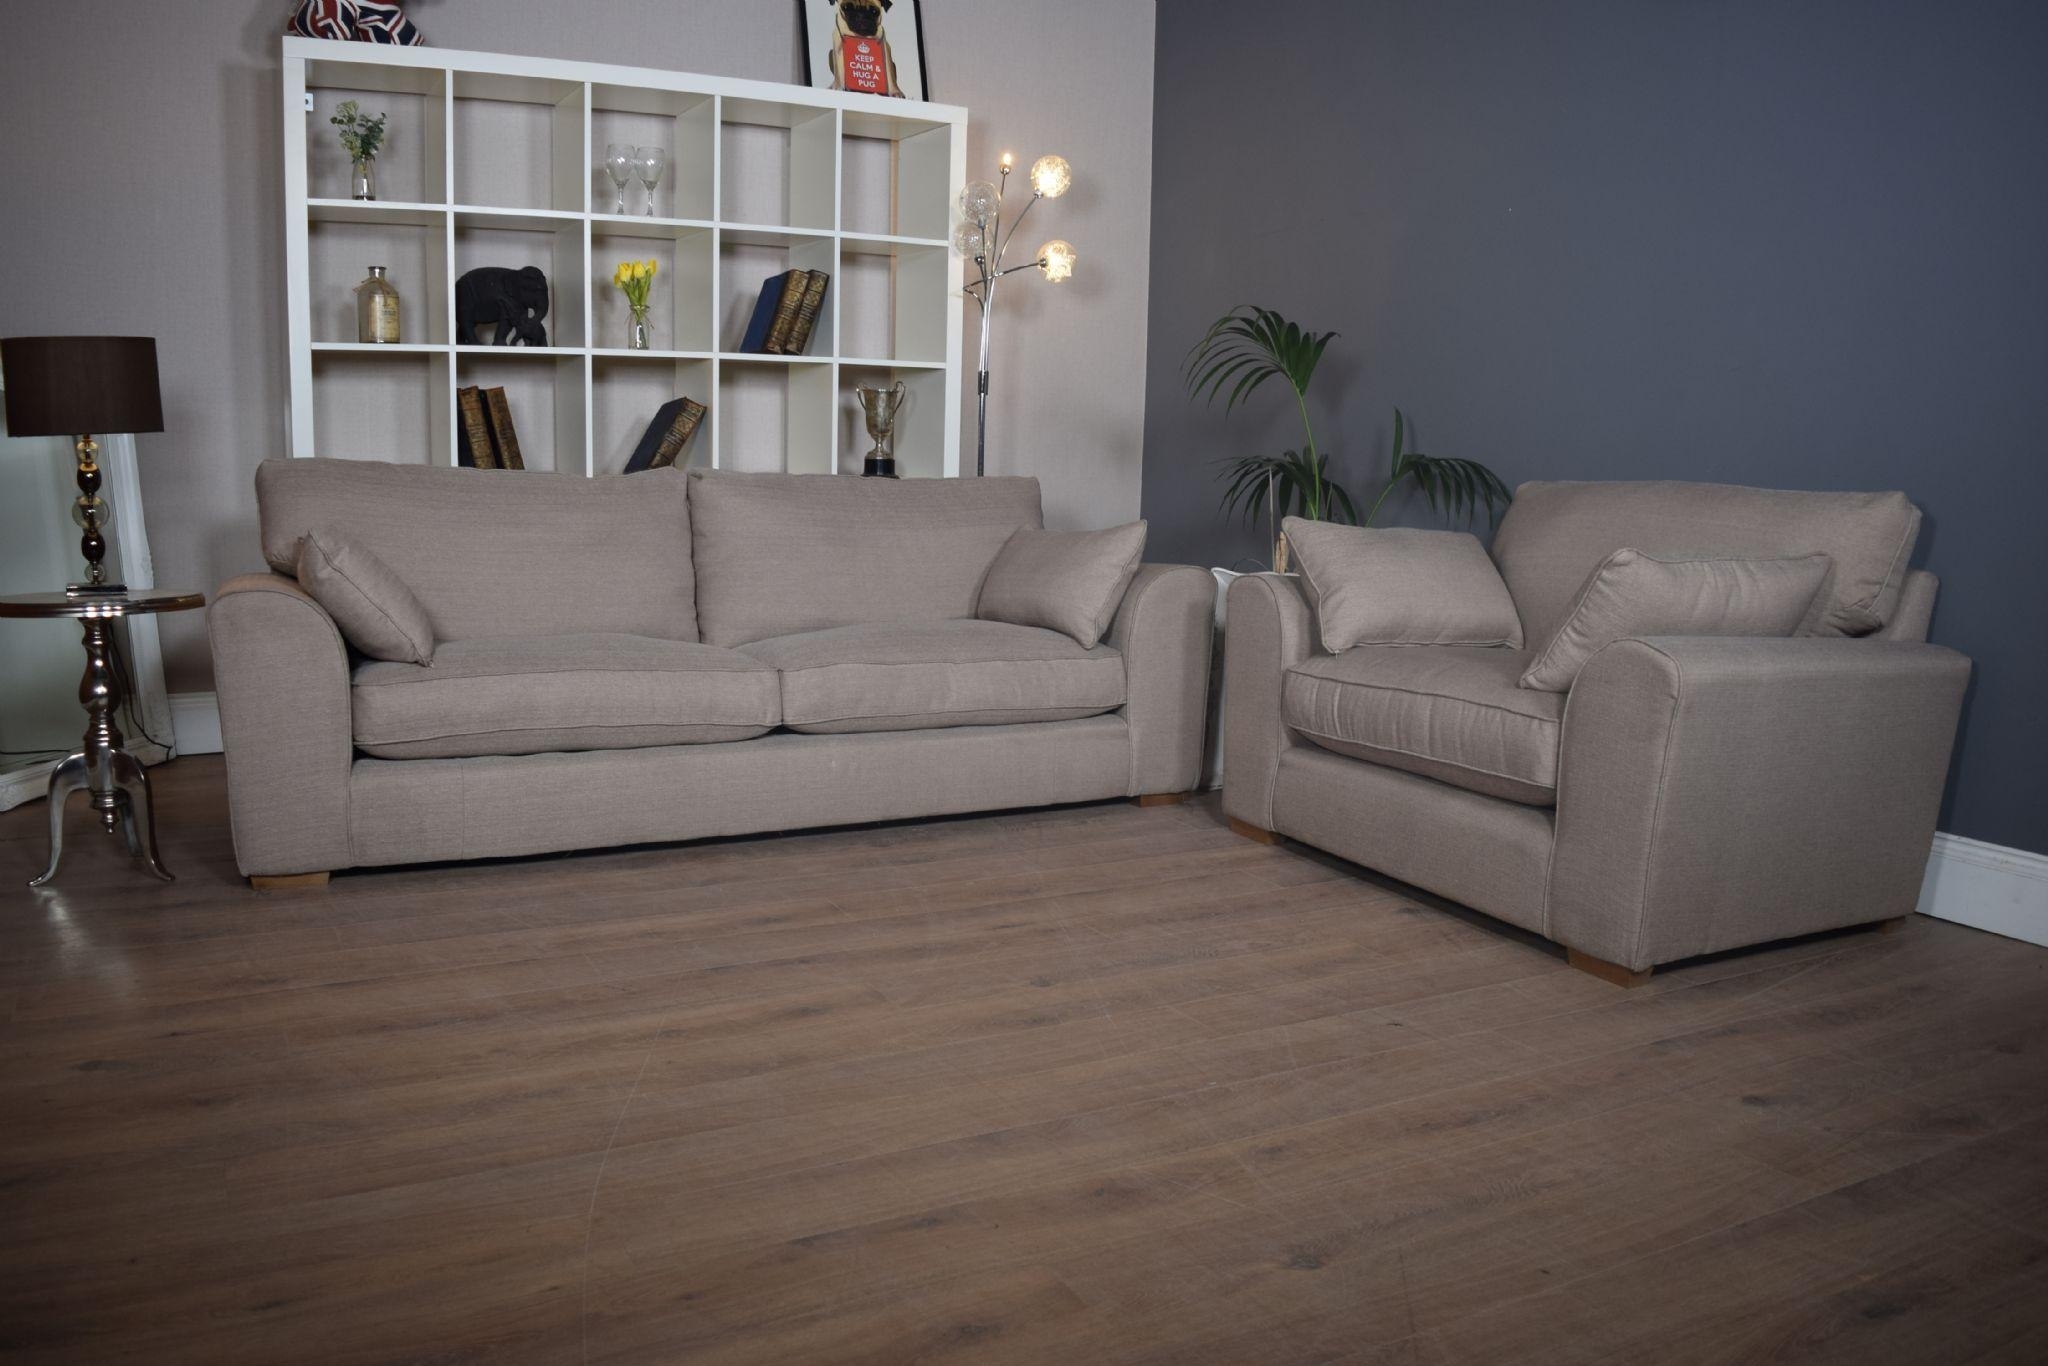 Set New Ashdown 3 Seater Sofa & Cuddle Chair Set – Beige Mink Throughout 3 Seater Sofa And Cuddle Chairs (View 3 of 20)